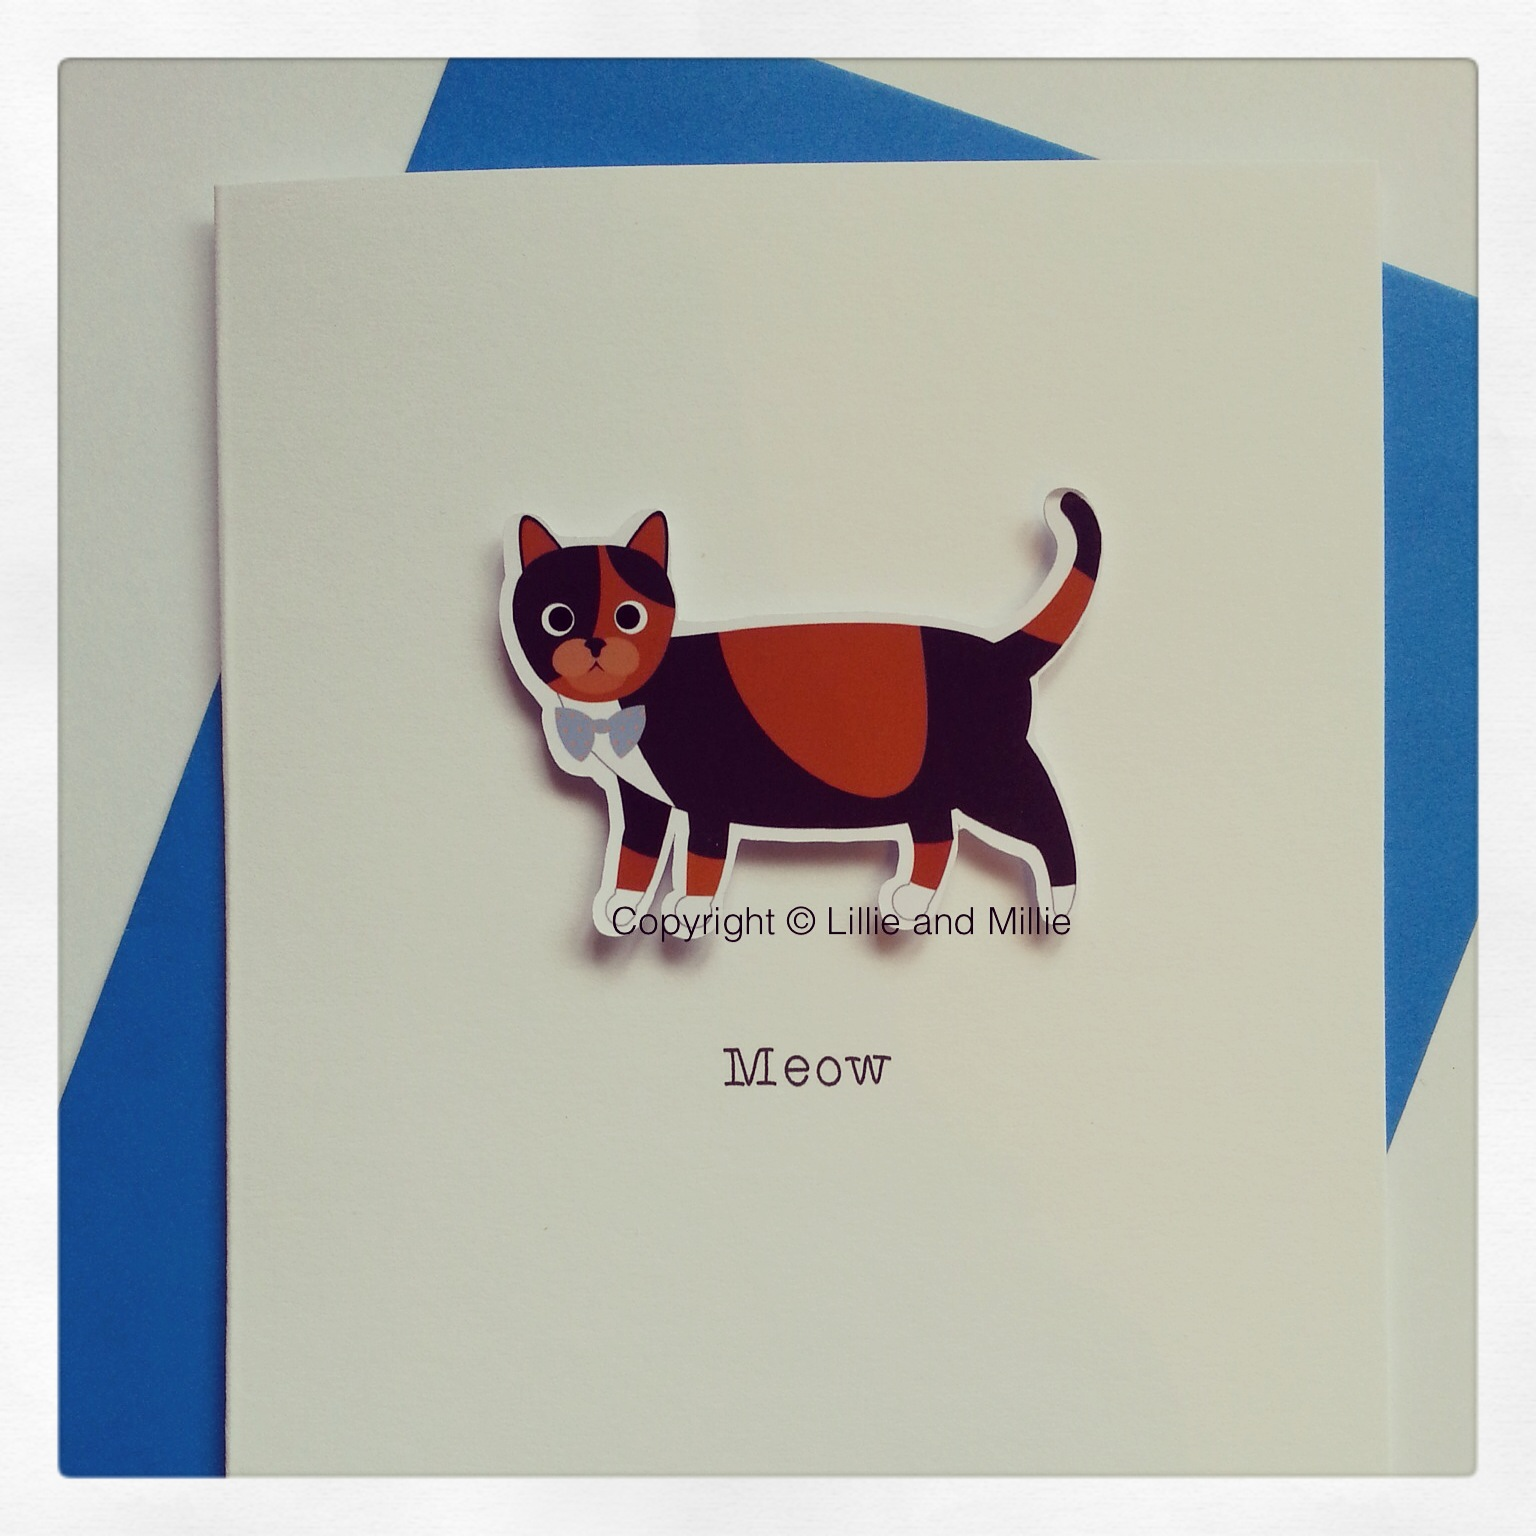 Tortoiseshell Cute and Cuddly Cat Greetings Card